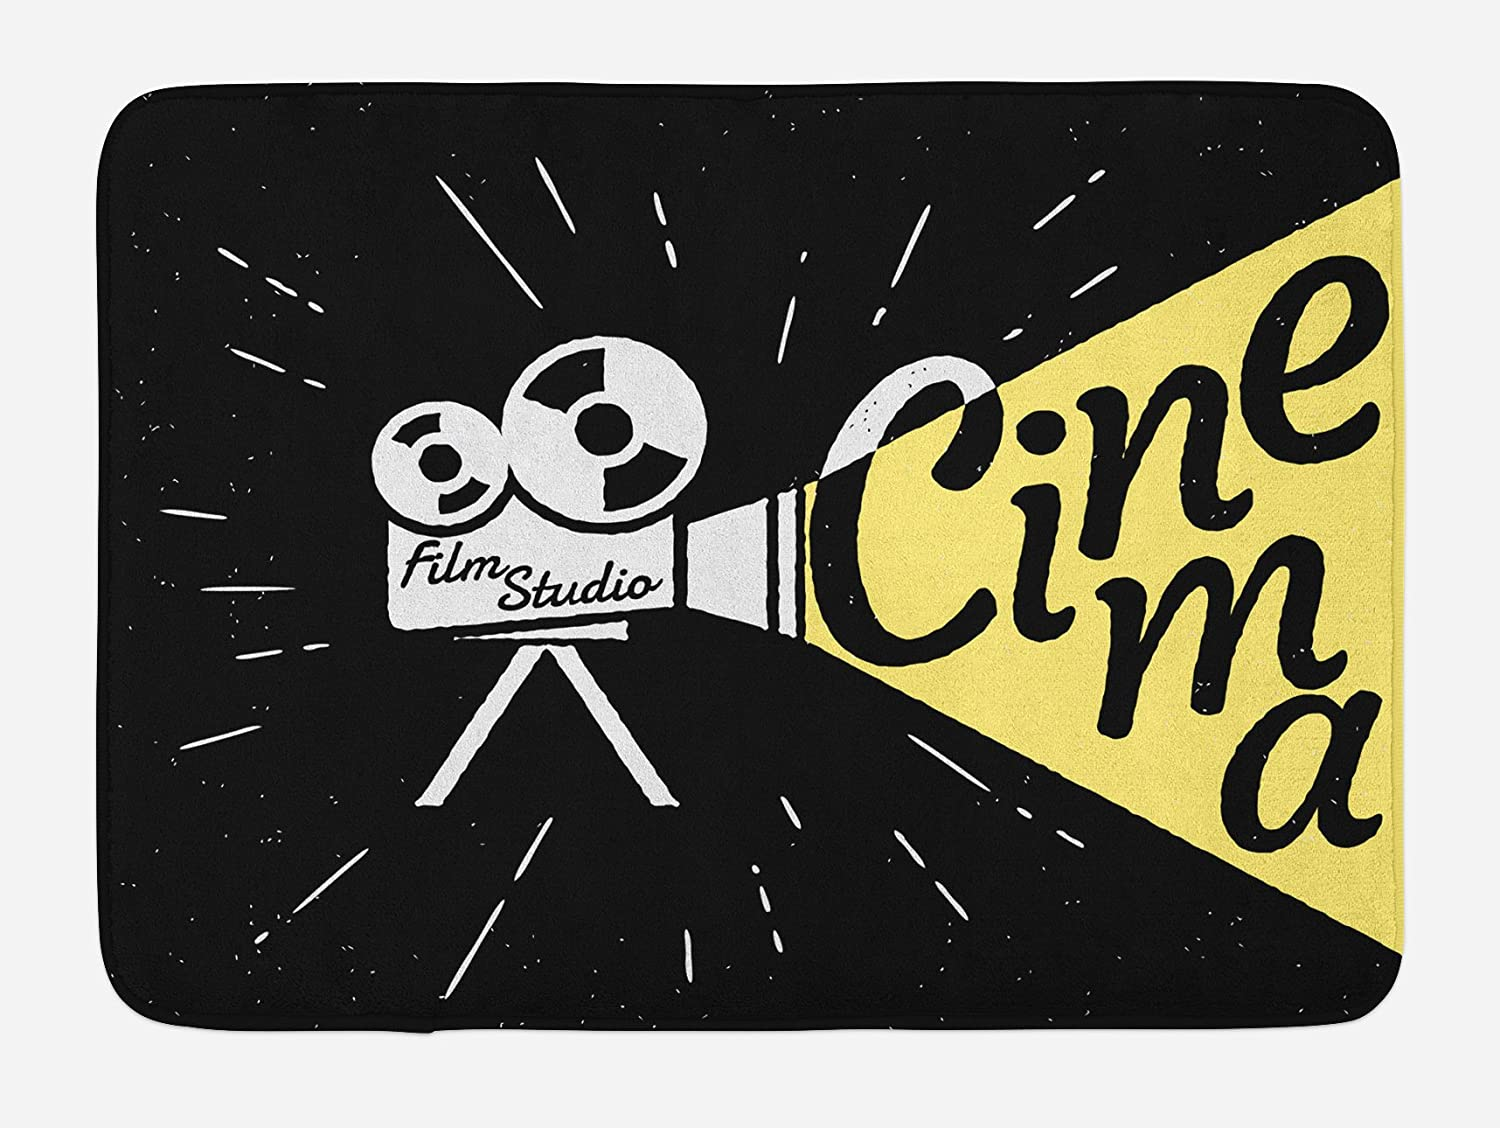 Ambesonne Movie Theater Bath Mat, Movie Projector Sketch with Grunge Cinema Lettering on Black Backdrop, Plush Bathroom Decor Mat with Non Slip Backing, 29.5